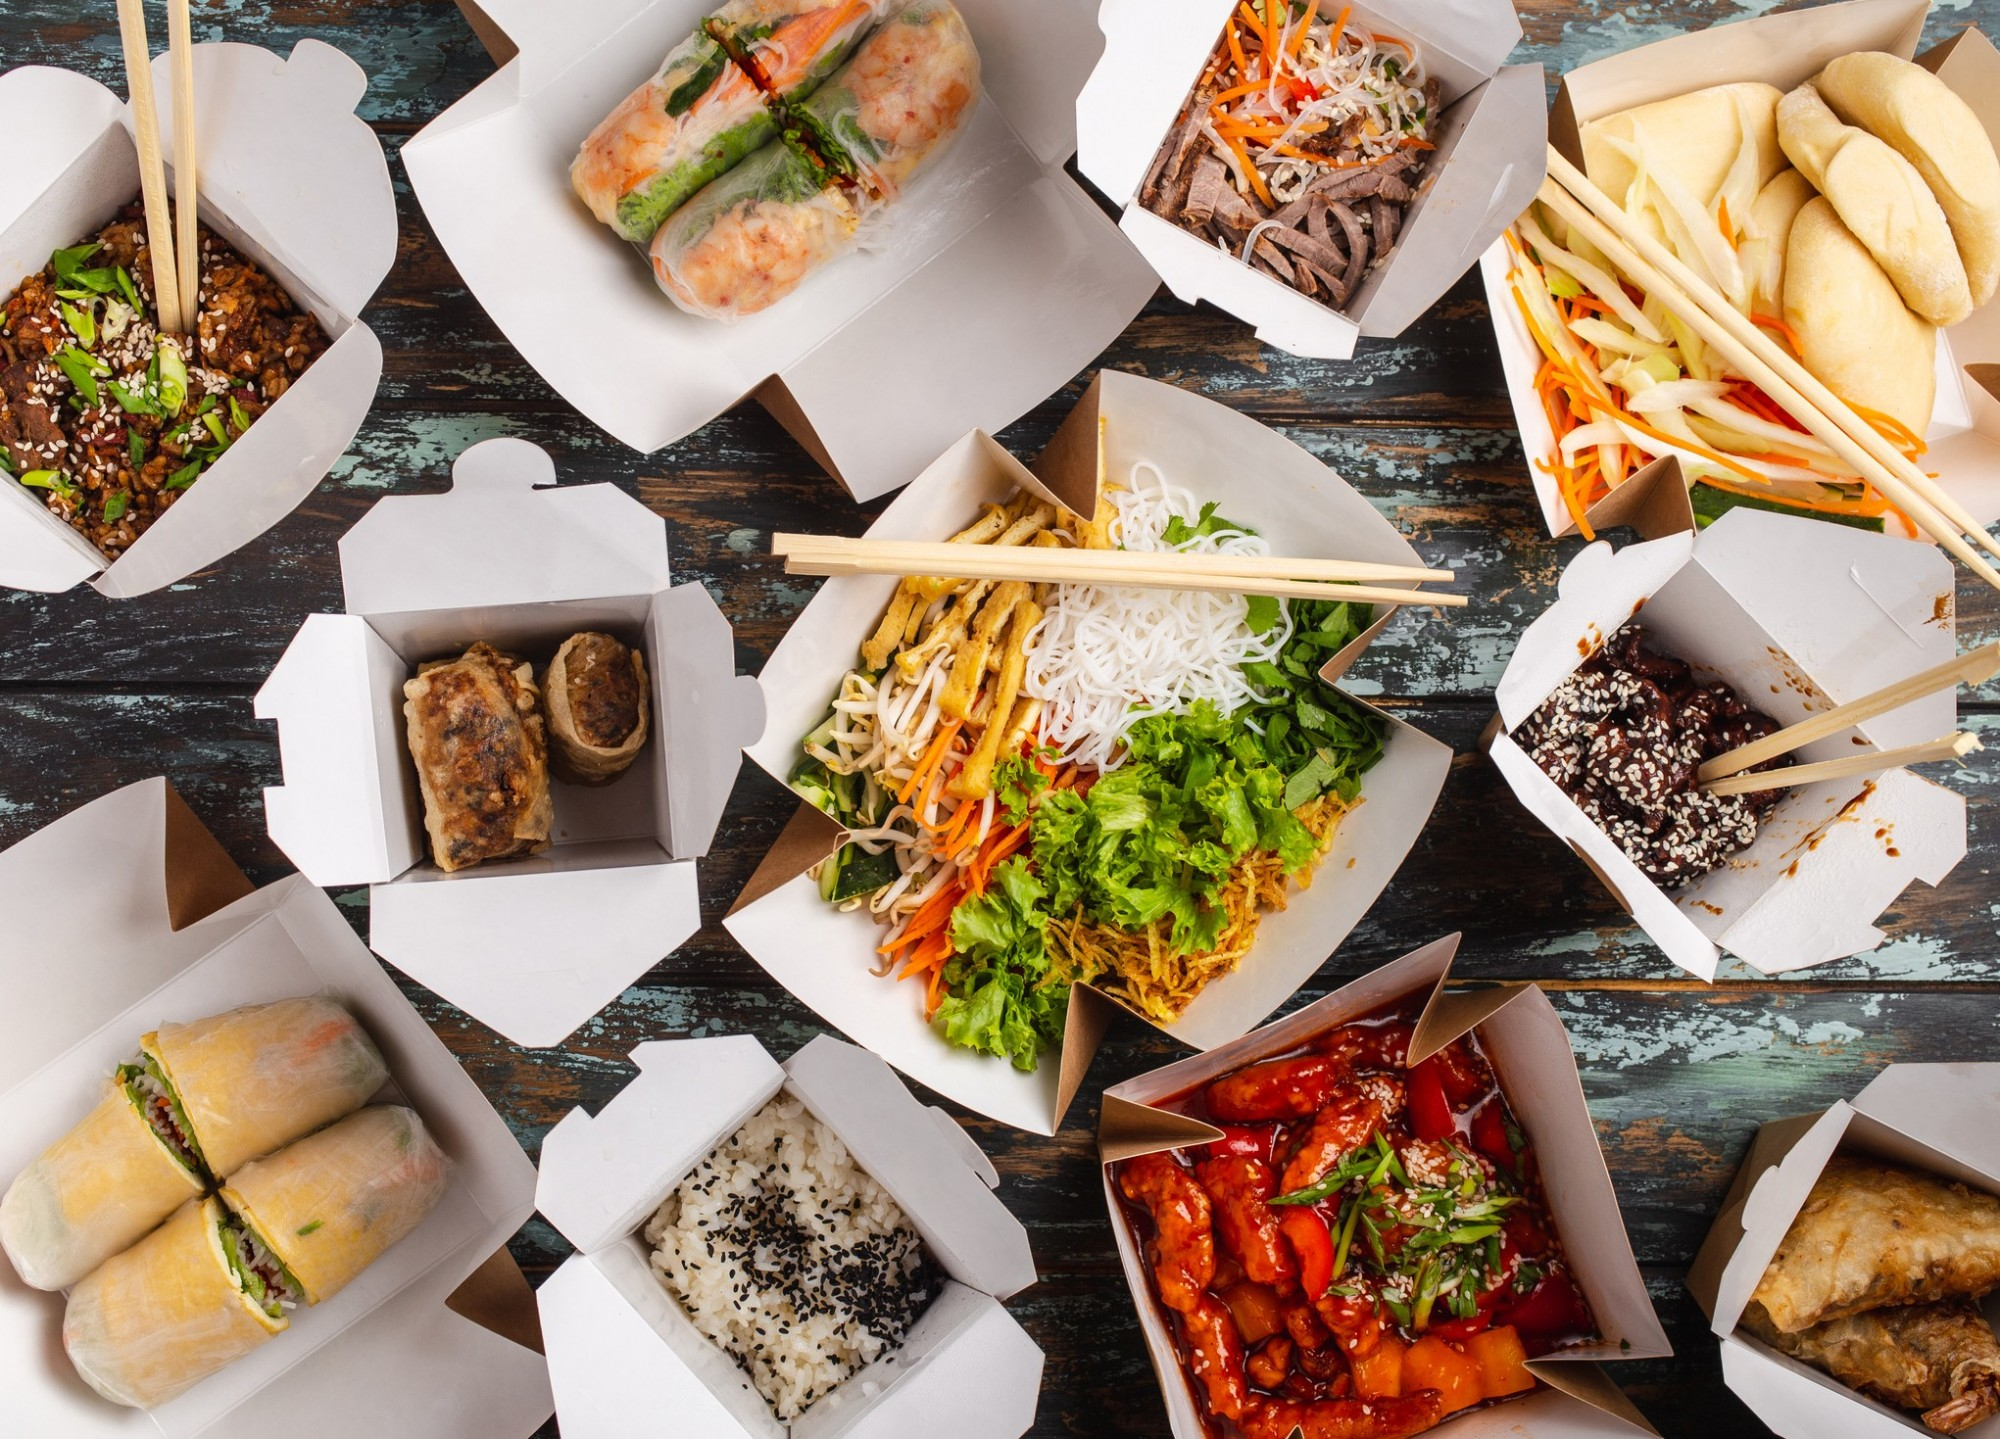 Spread of Asian food in boxes on a wooden table with chopsticks